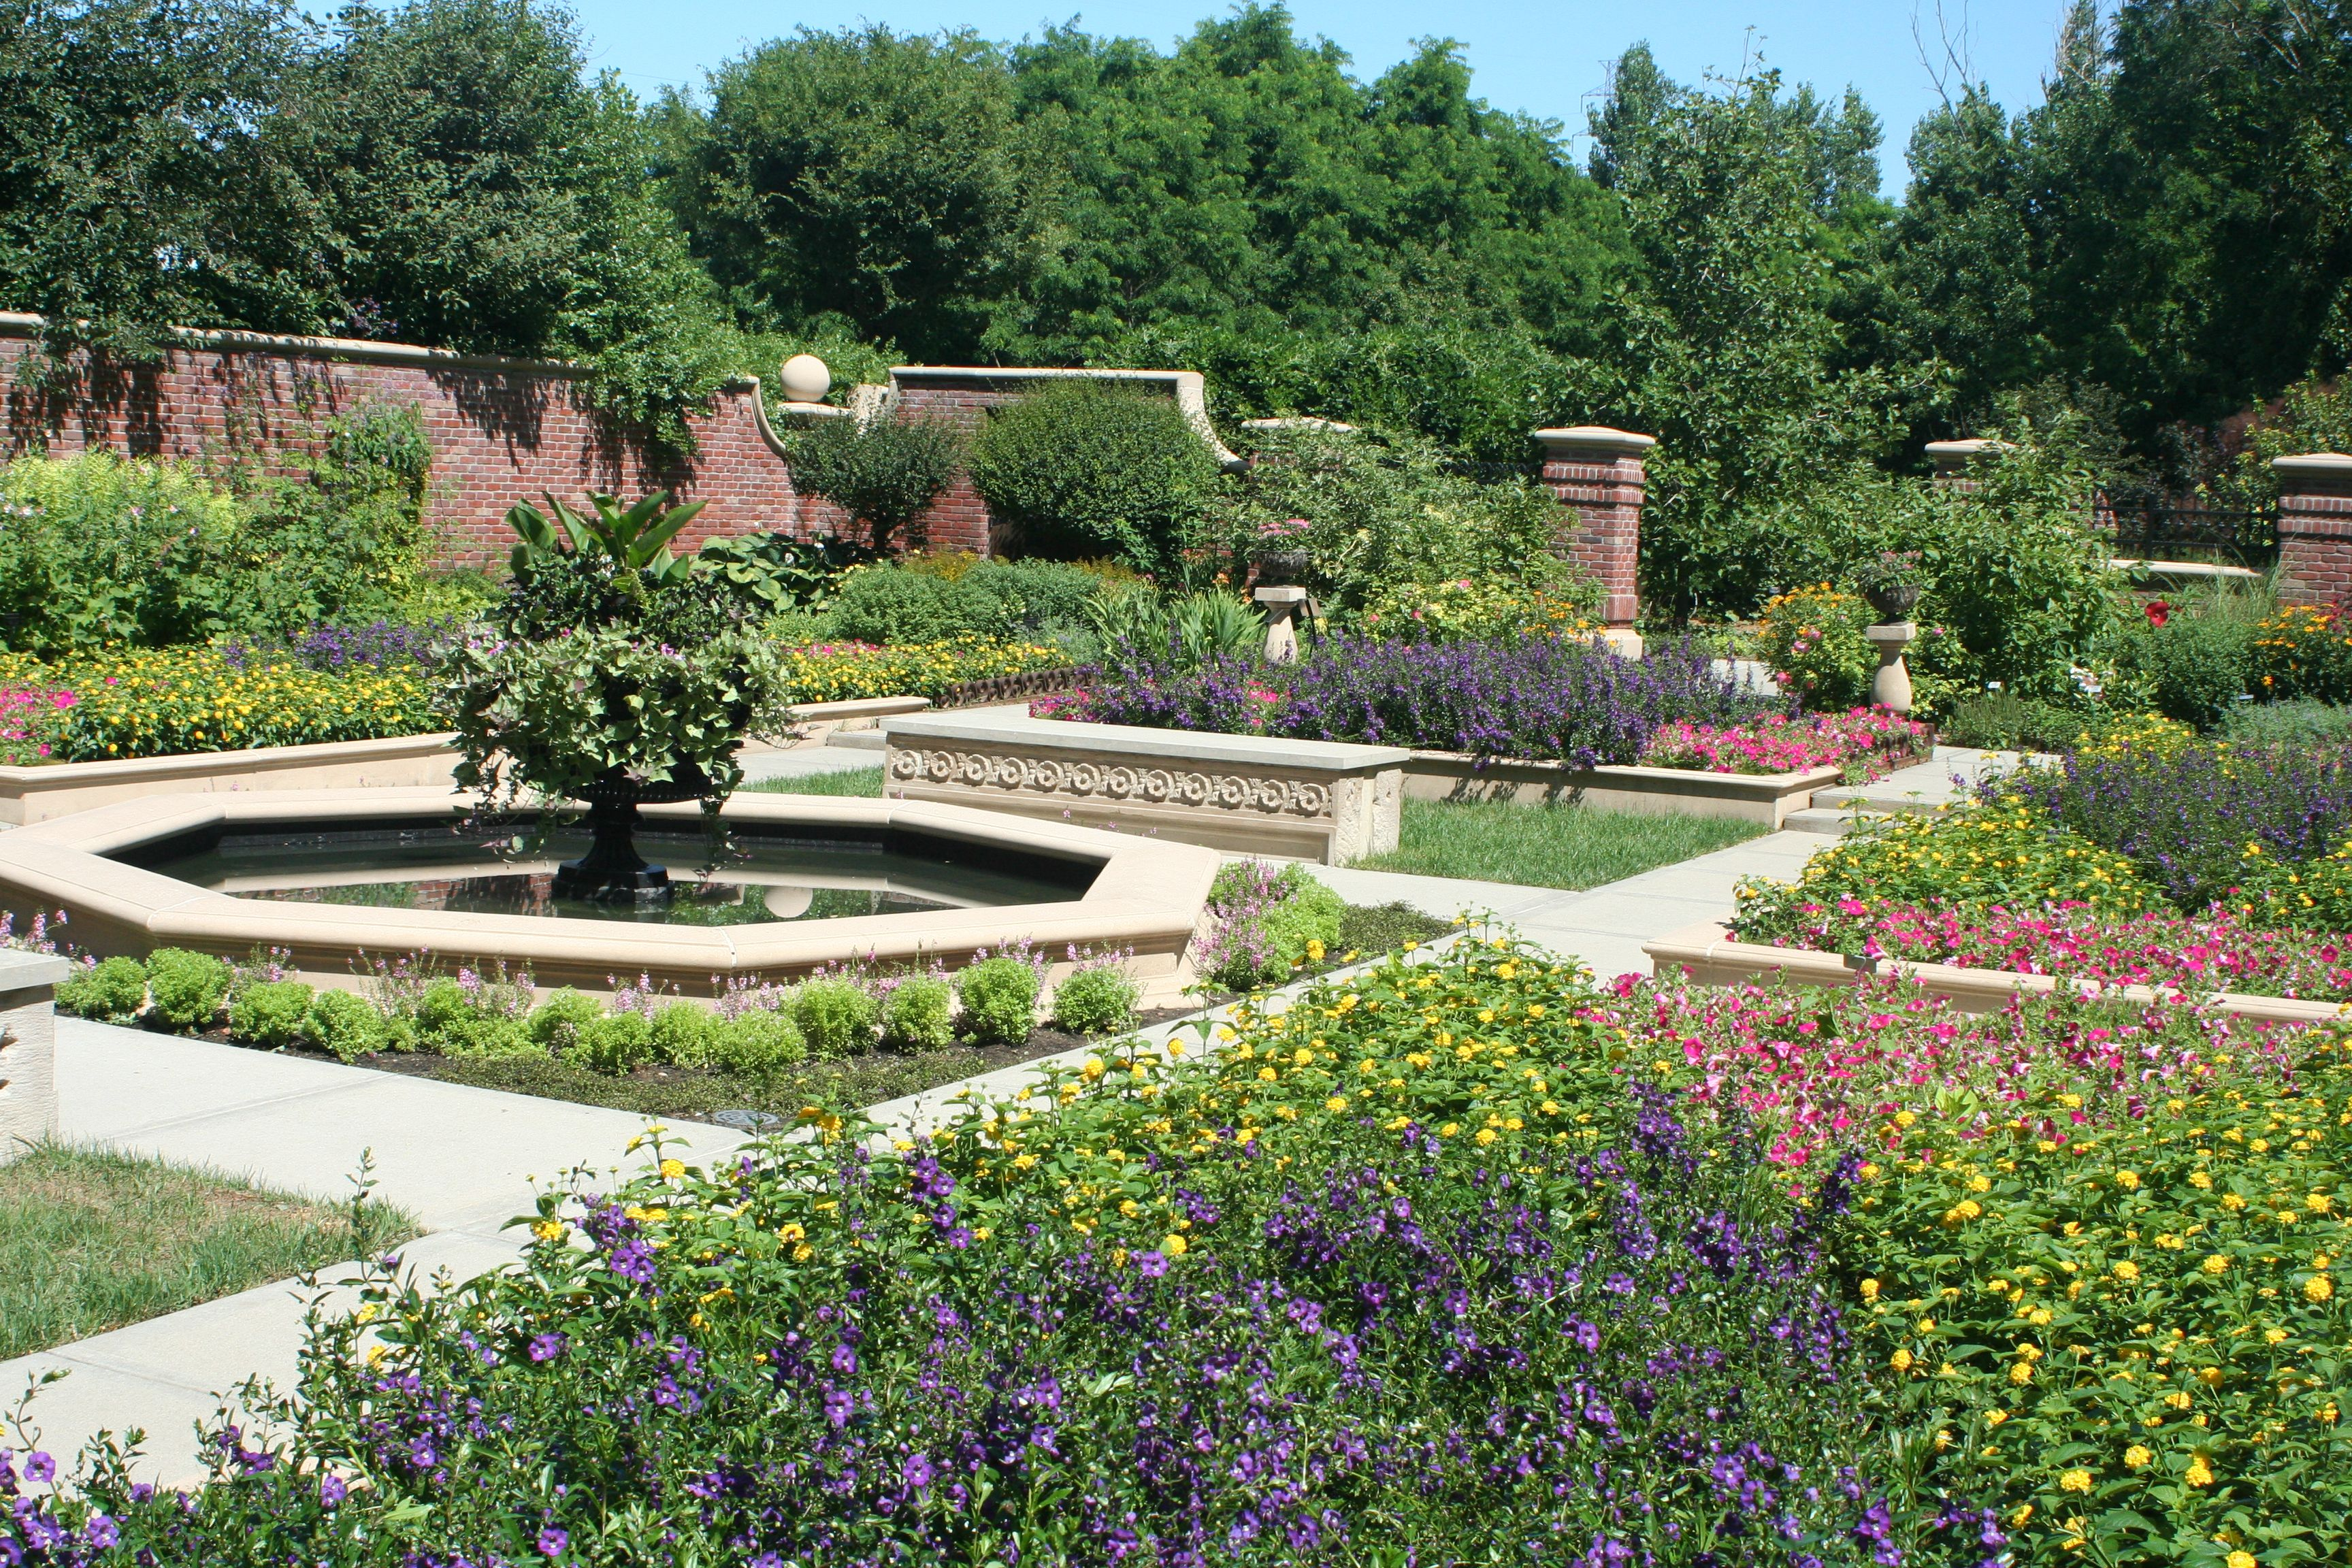 Fascinating Arboretum Omaha Ne Pictures To Pin On Pinterest  Pinsdaddy With Outstanding Pin  With Awesome Ronseal Garden Furniture Paint Also National Garden Athens In Addition Fountain Garden Sunderland Menu And Covent Garden Soups As Well As Weather Trentham Gardens Additionally Magnolia Garden Nursery From Pinsdaddycom With   Outstanding Arboretum Omaha Ne Pictures To Pin On Pinterest  Pinsdaddy With Awesome Pin  And Fascinating Ronseal Garden Furniture Paint Also National Garden Athens In Addition Fountain Garden Sunderland Menu From Pinsdaddycom